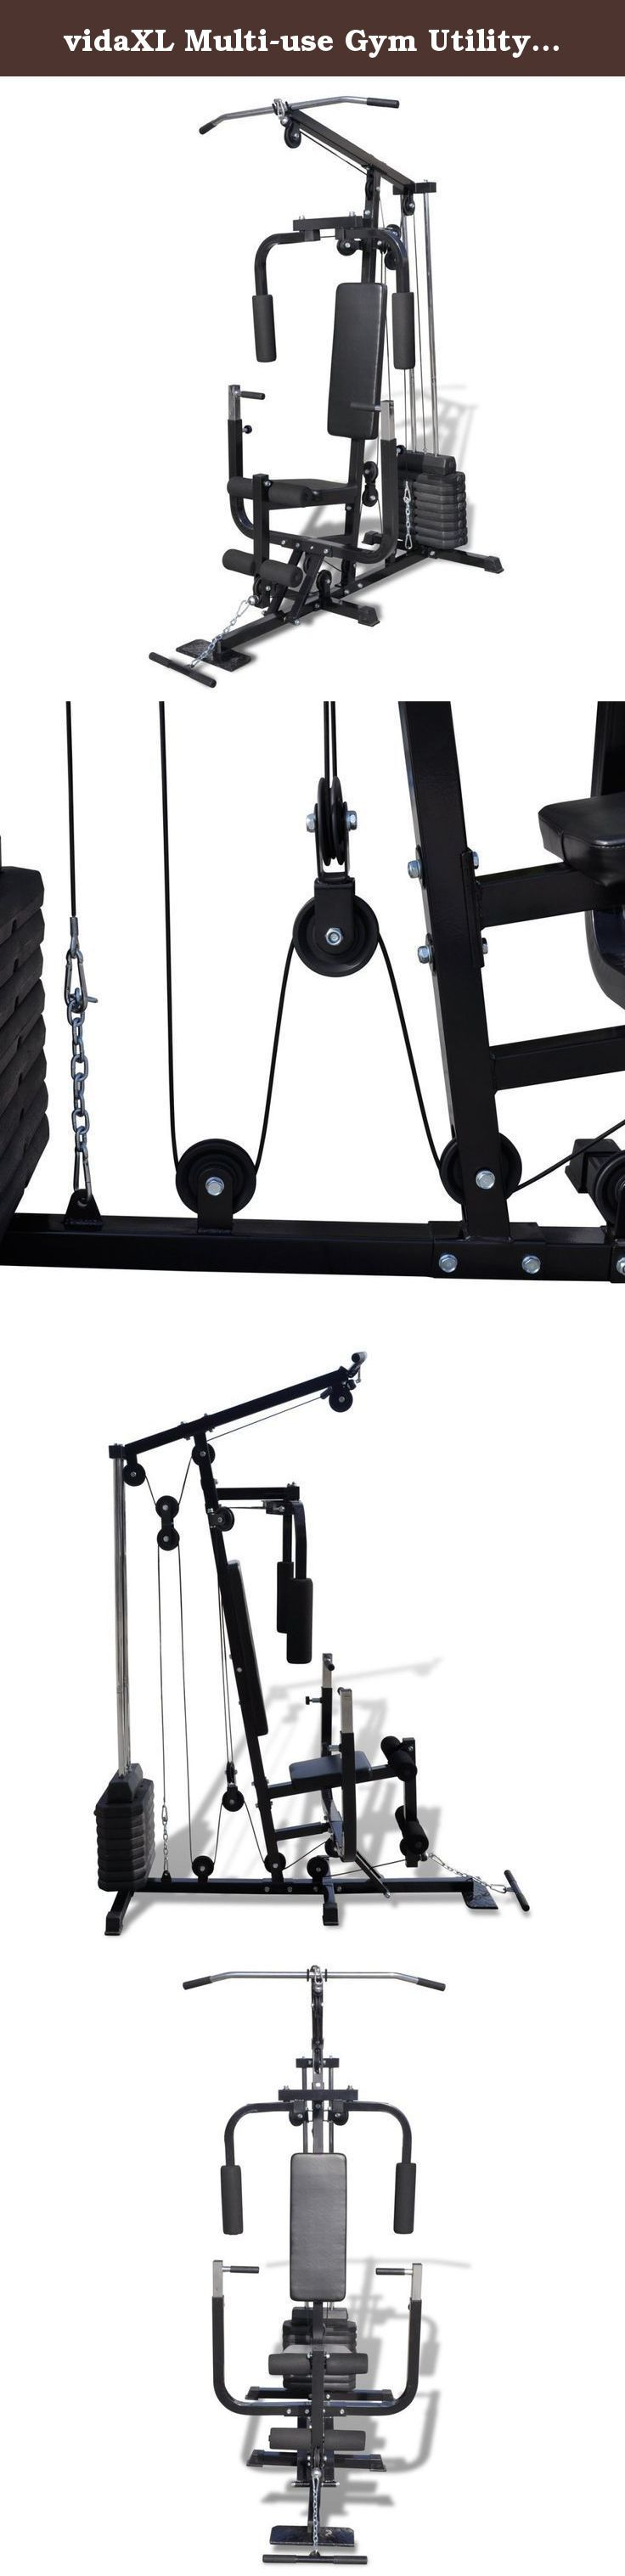 vidaXL Multi-use Gym Utility Fitness Machine. This home gym enables you to do a whole body workout at home and is a great choice for exercise lovers. It will improve your physical fitness, tone your muscle and in conjunction with a calorie controlled diet help you lose weight. This multi gym is suitable for a personal training studio, home gym or commercial gym. The backrest strengthens your back muscles, the curl and butterfly functions build your shoulders and arms, and the leg-curl…